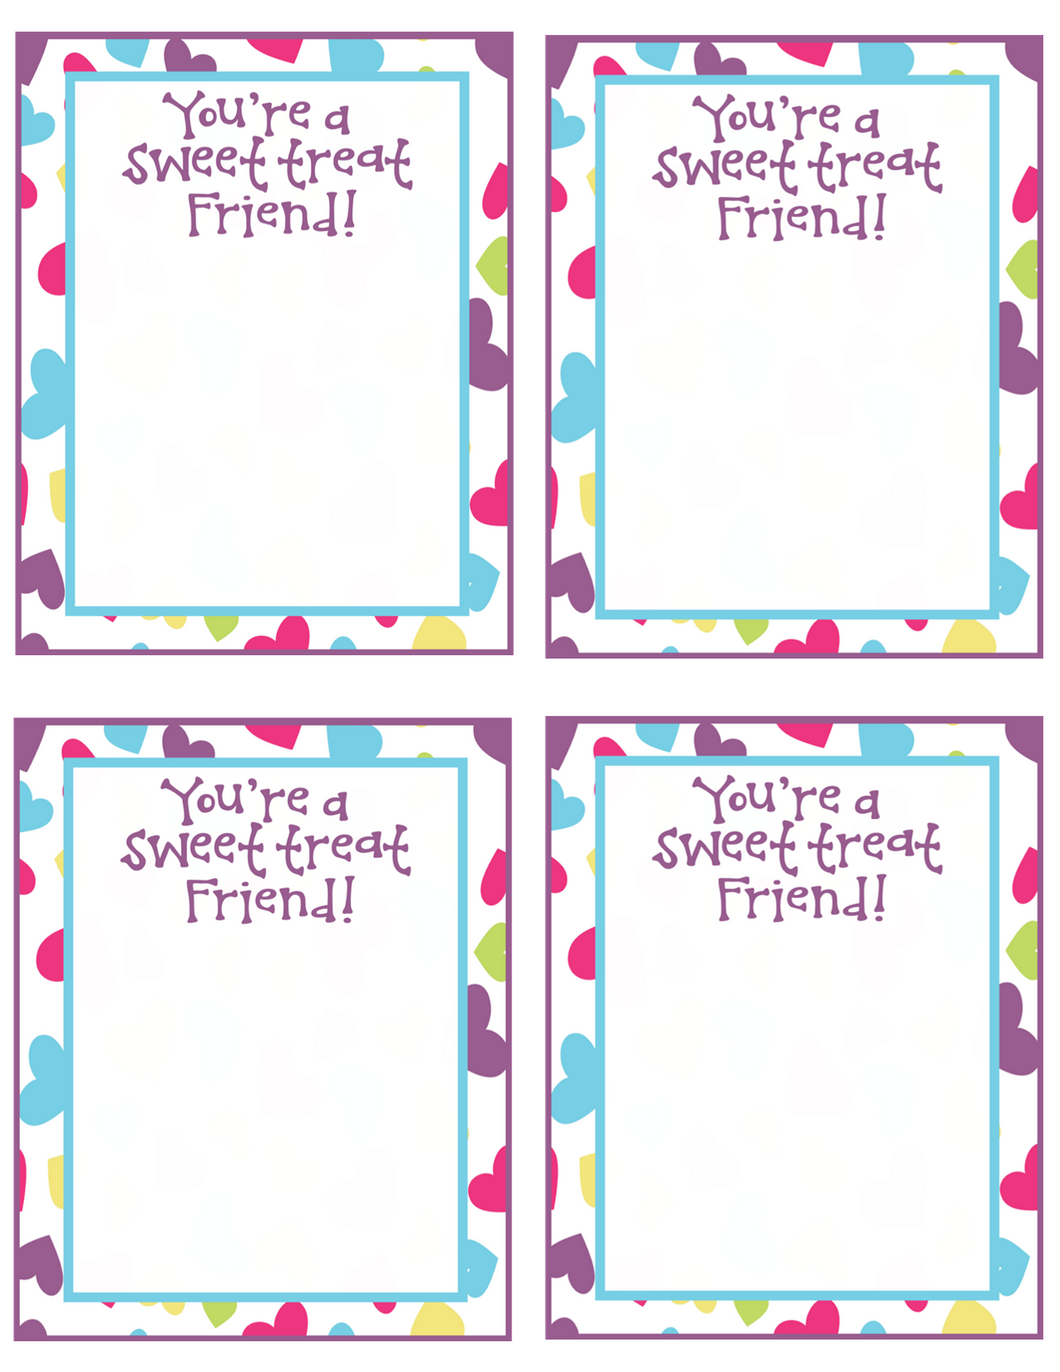 Sweet Treat Friend VDay Card 4x5 - Dots and Bows Designs